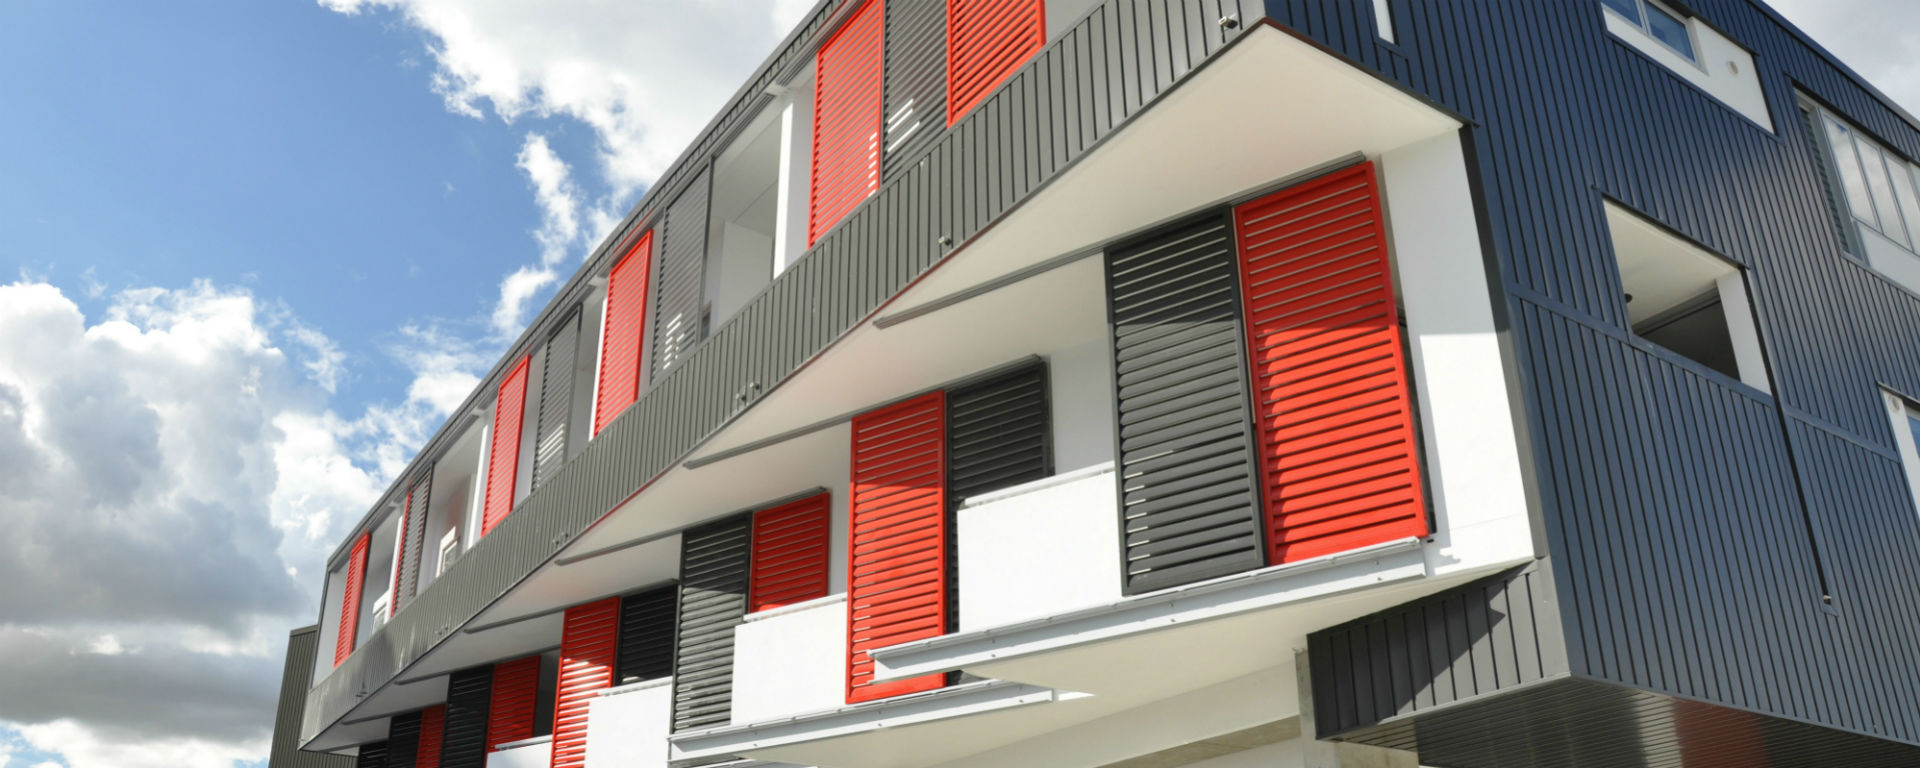 Welcome to all fab qld specialist in aluminium louvre for Balcony louvres